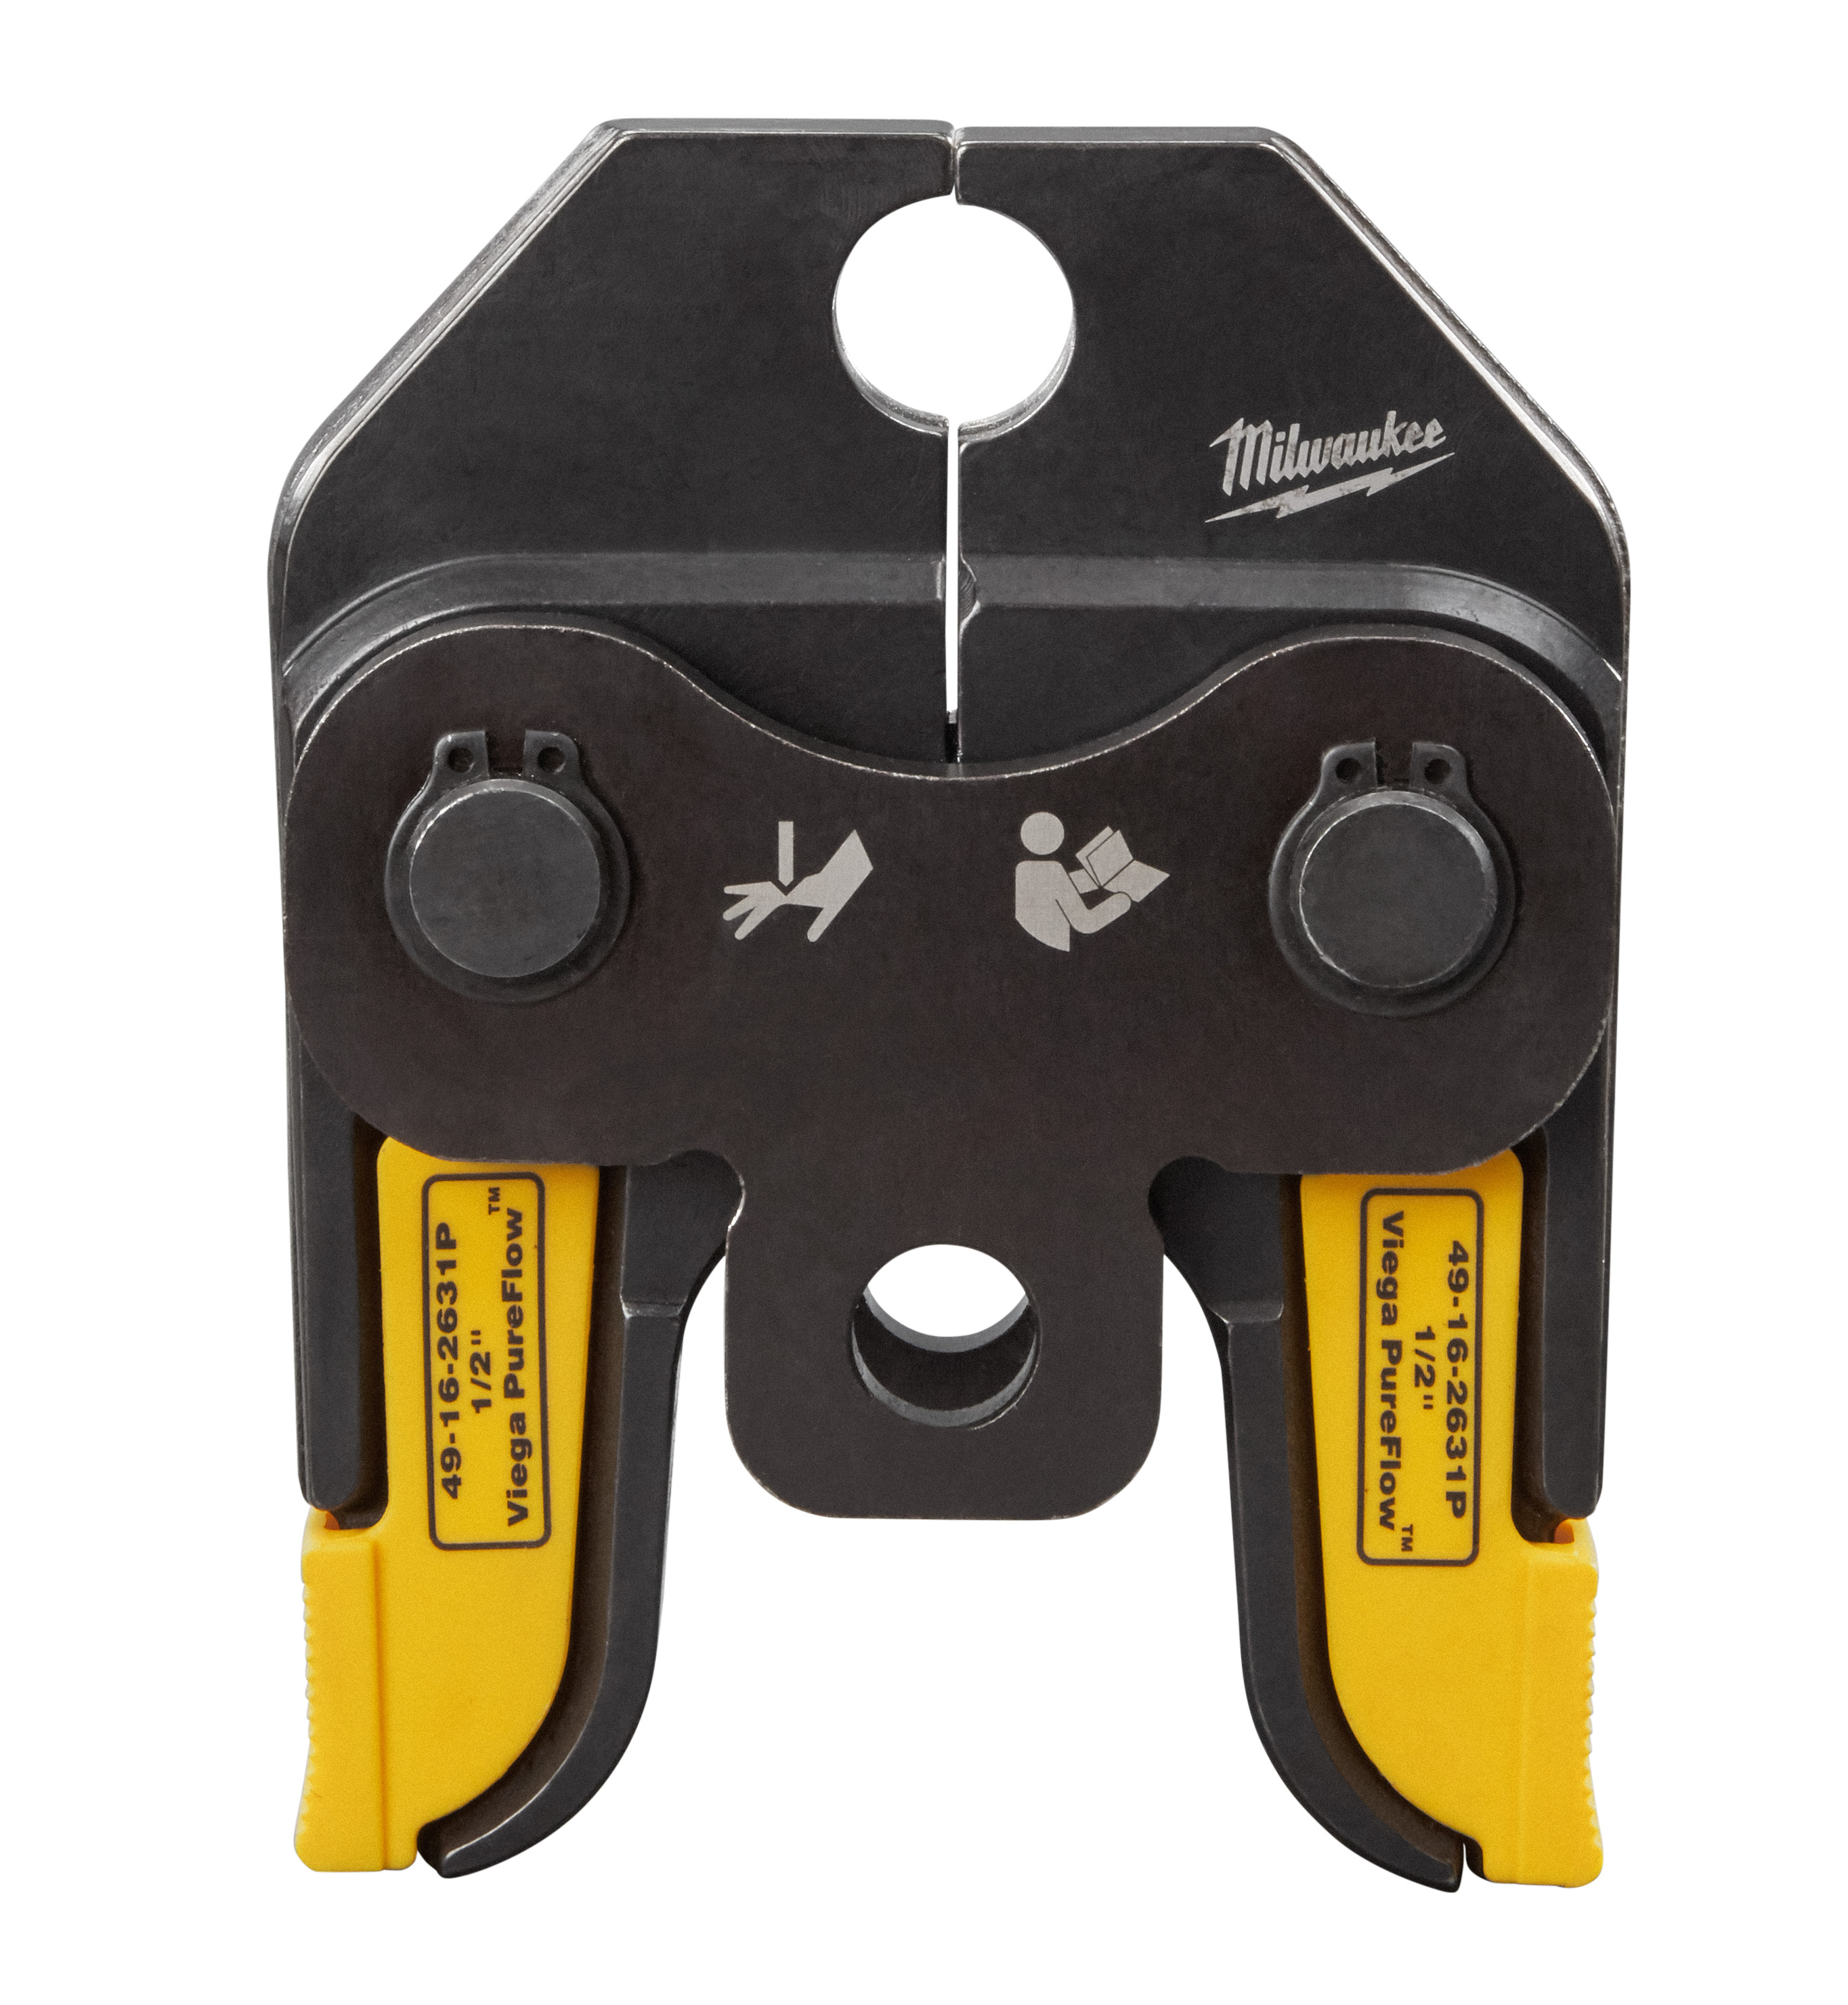 Milwaukee® Viega PureFlow® 49-16-2631P Press Jaw, For Use With M18™ Short Throw Press Tool and Viega PureFlow™ Fitting System, 1/2 in Jaw Capacity, Steel